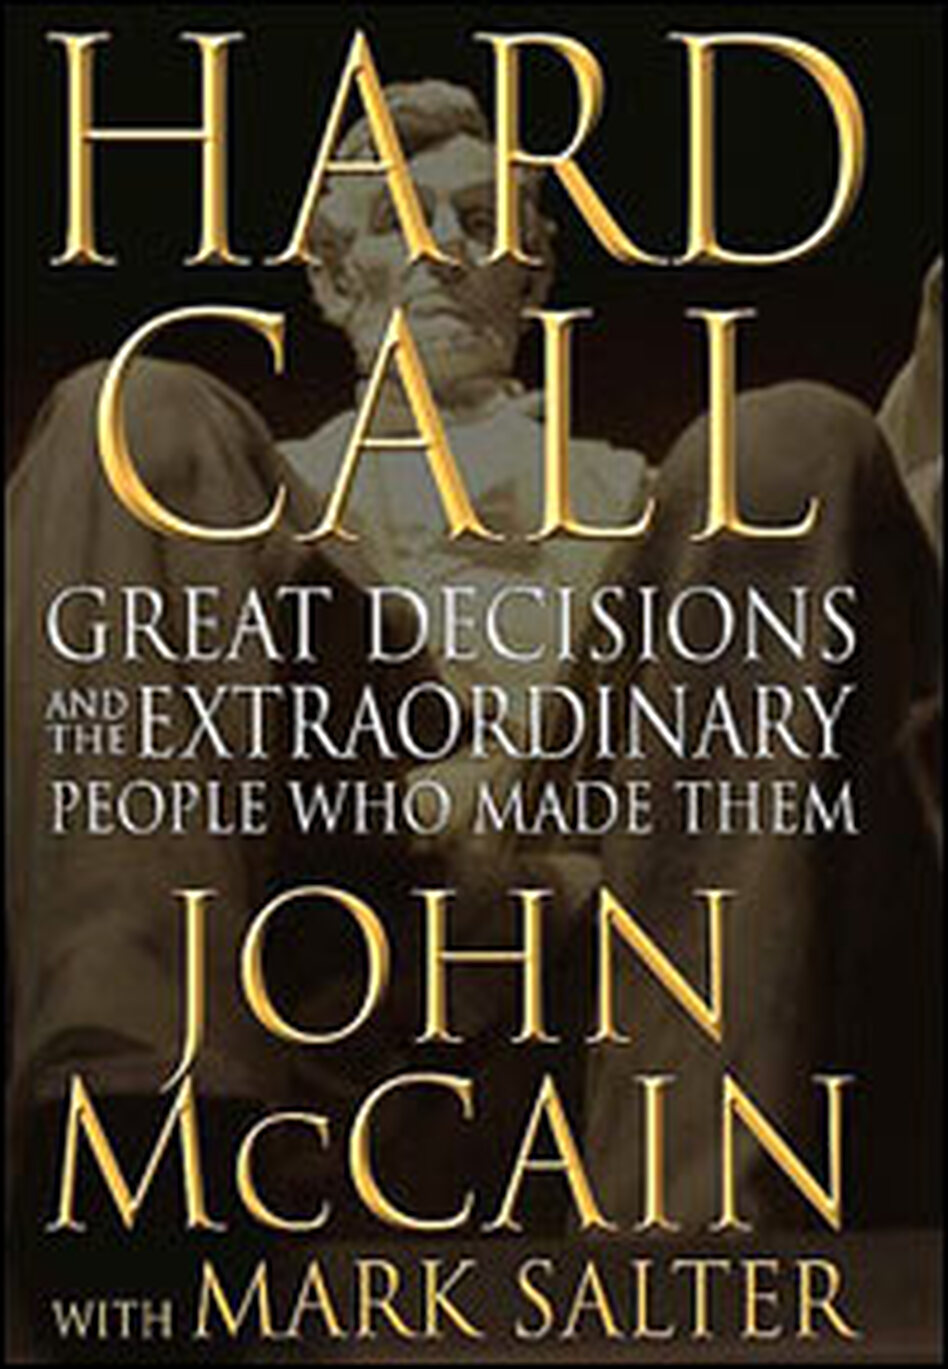 <em>Hard Call</em>, John McCain's latest book, is about making difficult decisions.